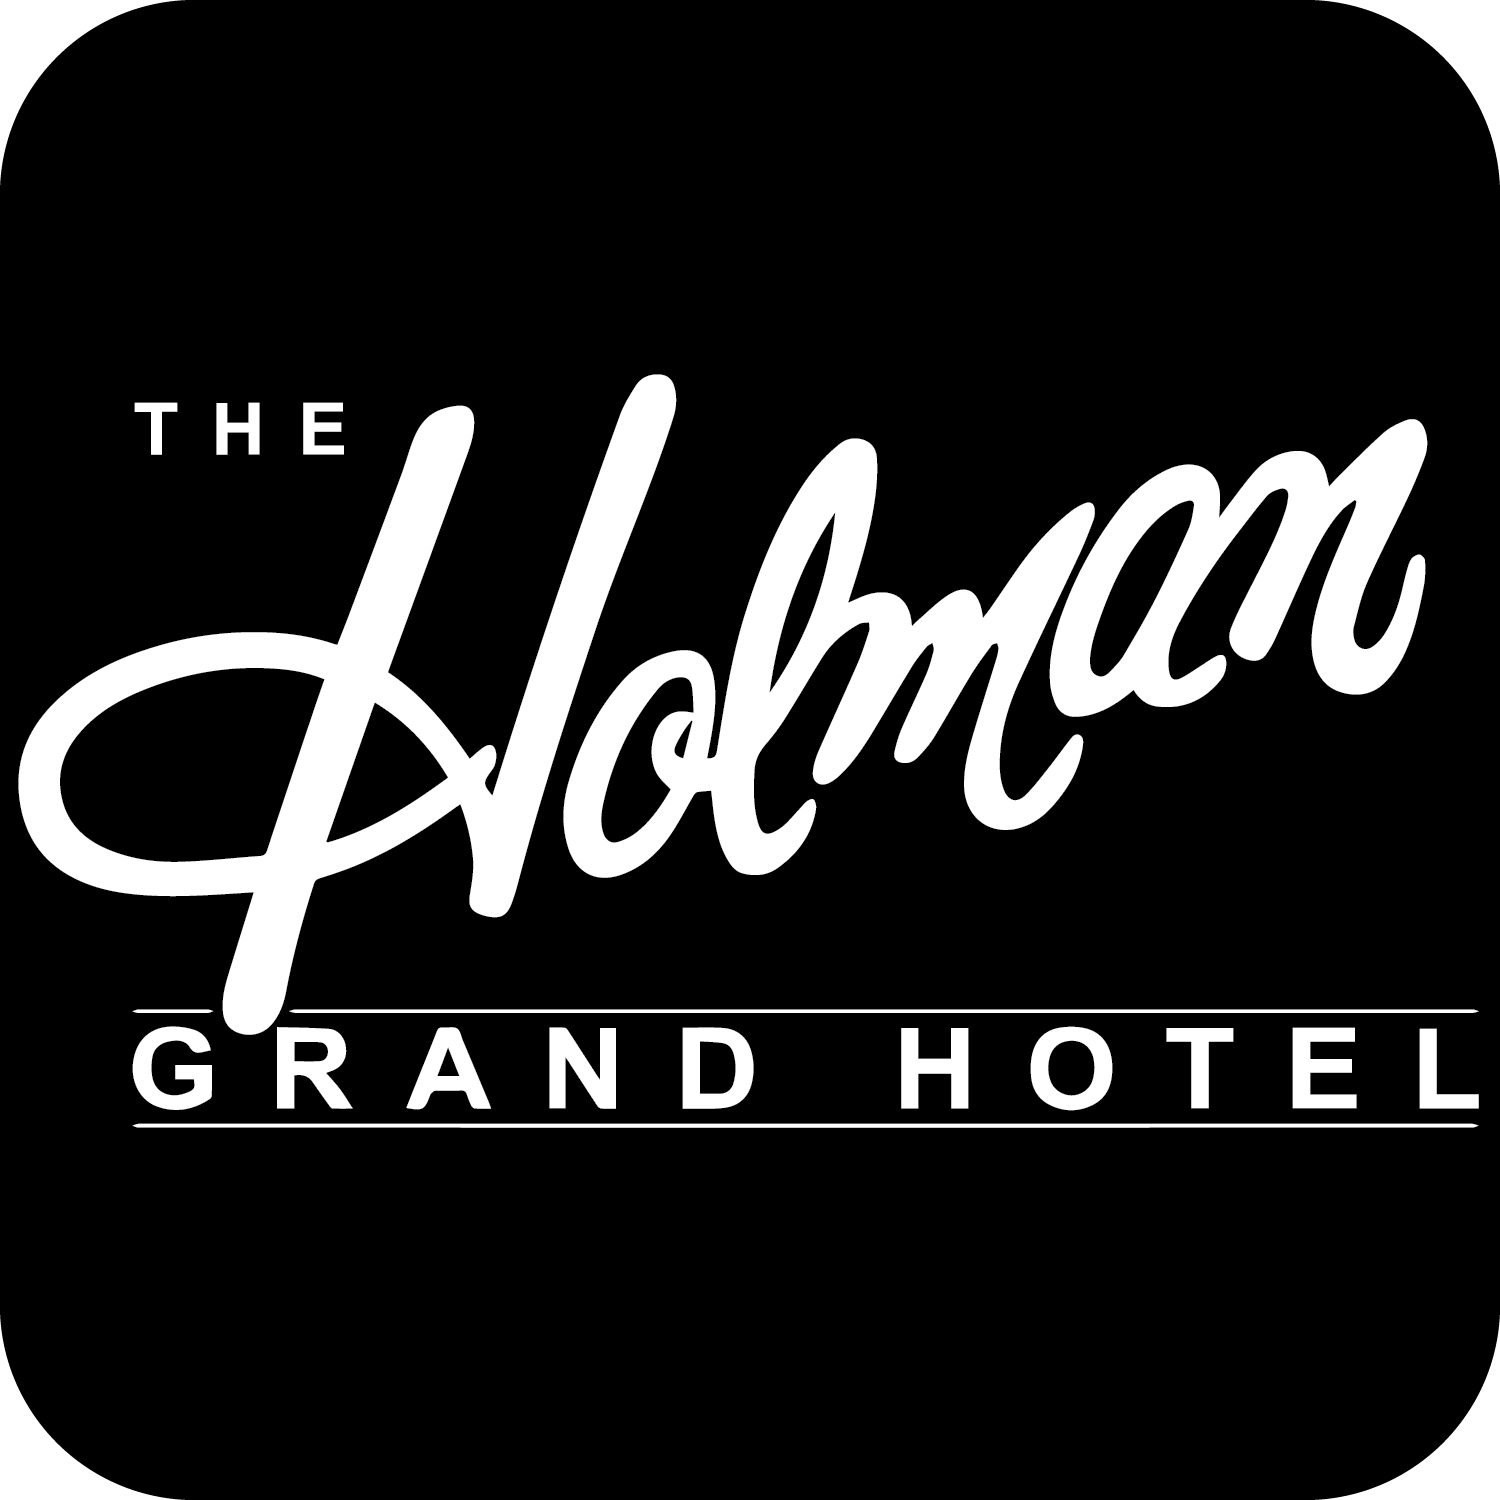 The Holman Grand Hotel